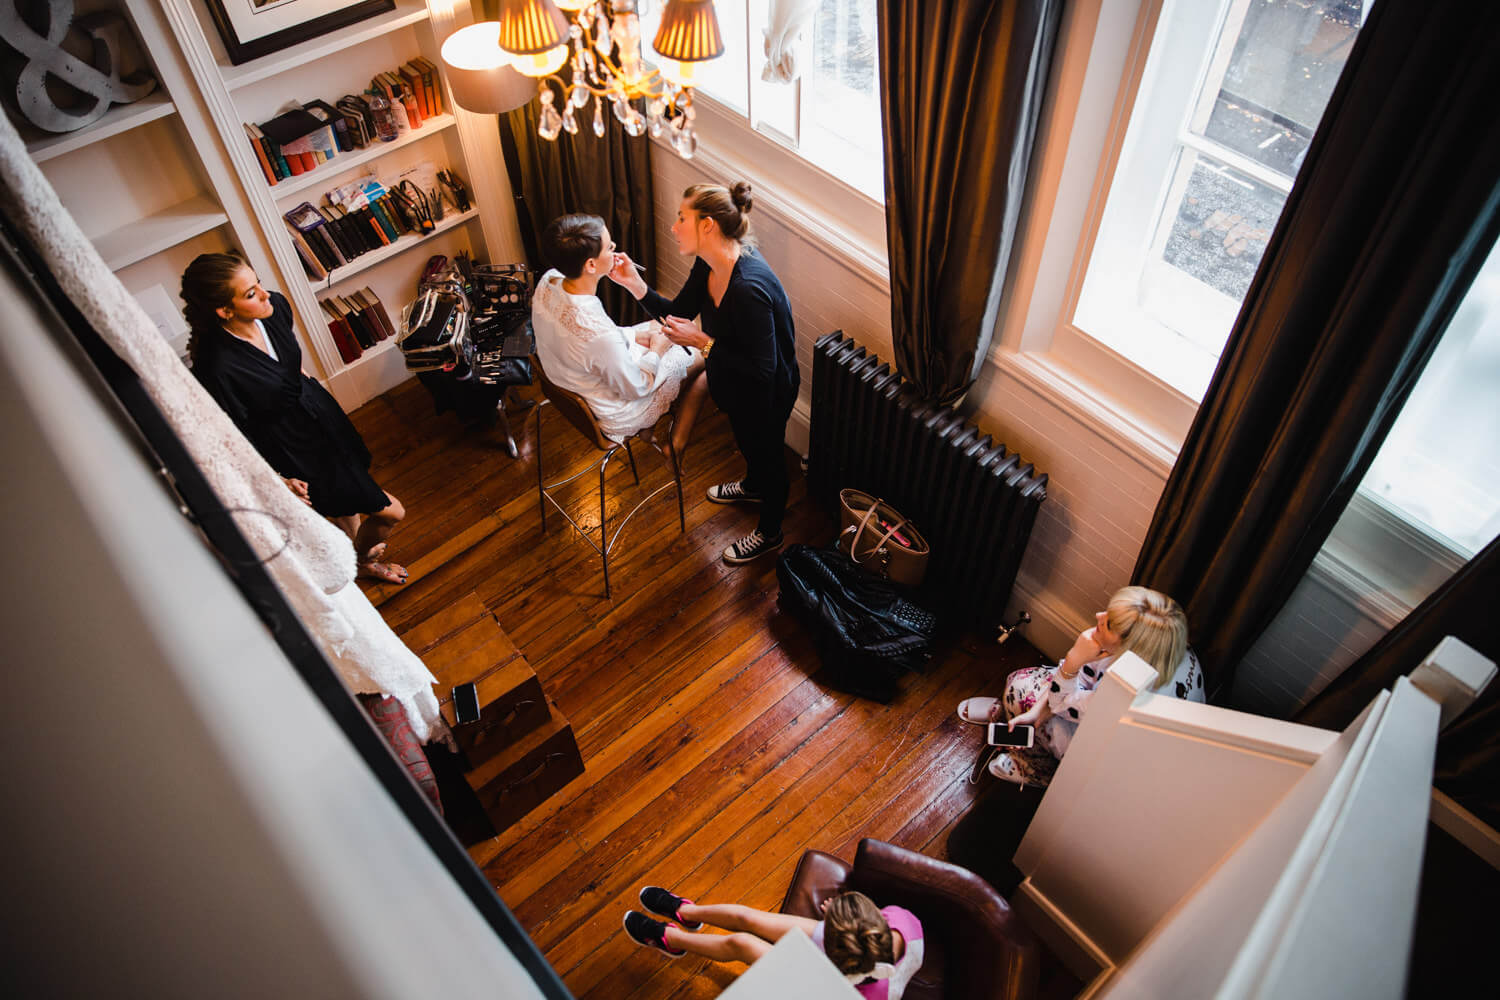 photograph taken from top of balcony looking down at bridal preparation area